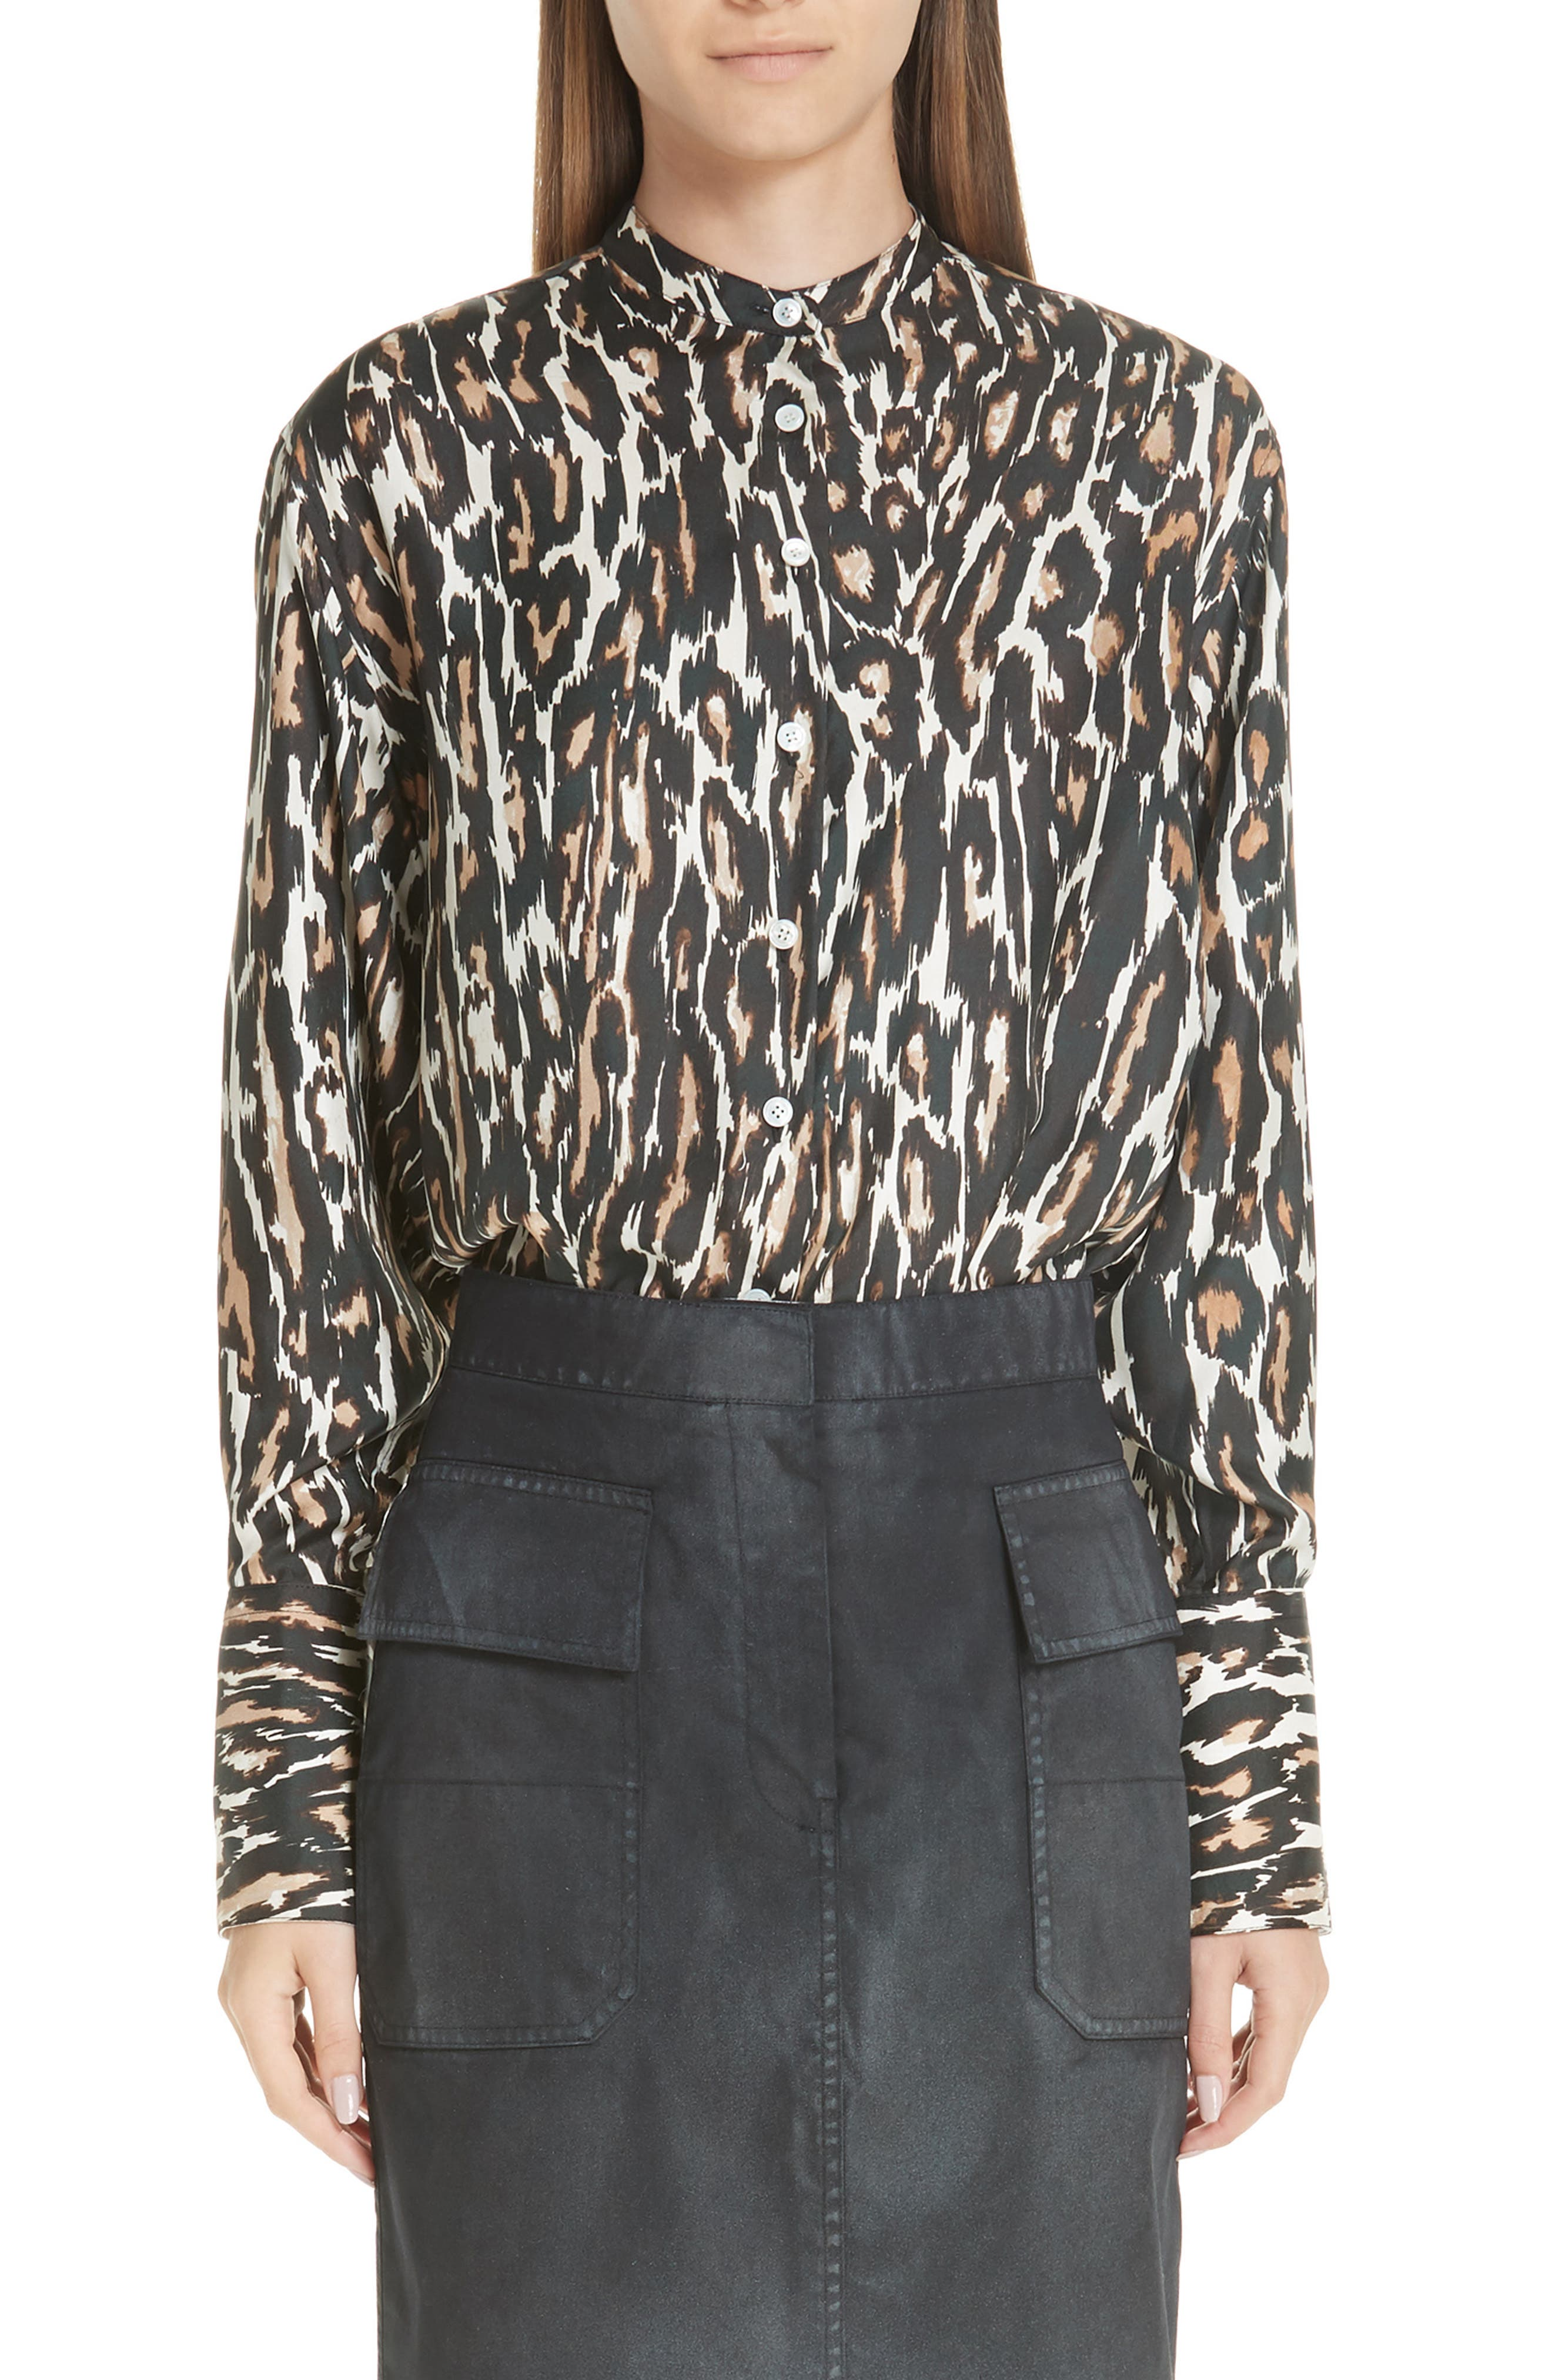 Leopard Print Silk Twill Blouse,                         Main,                         color, IVORY BROWN BLACK BEIGE